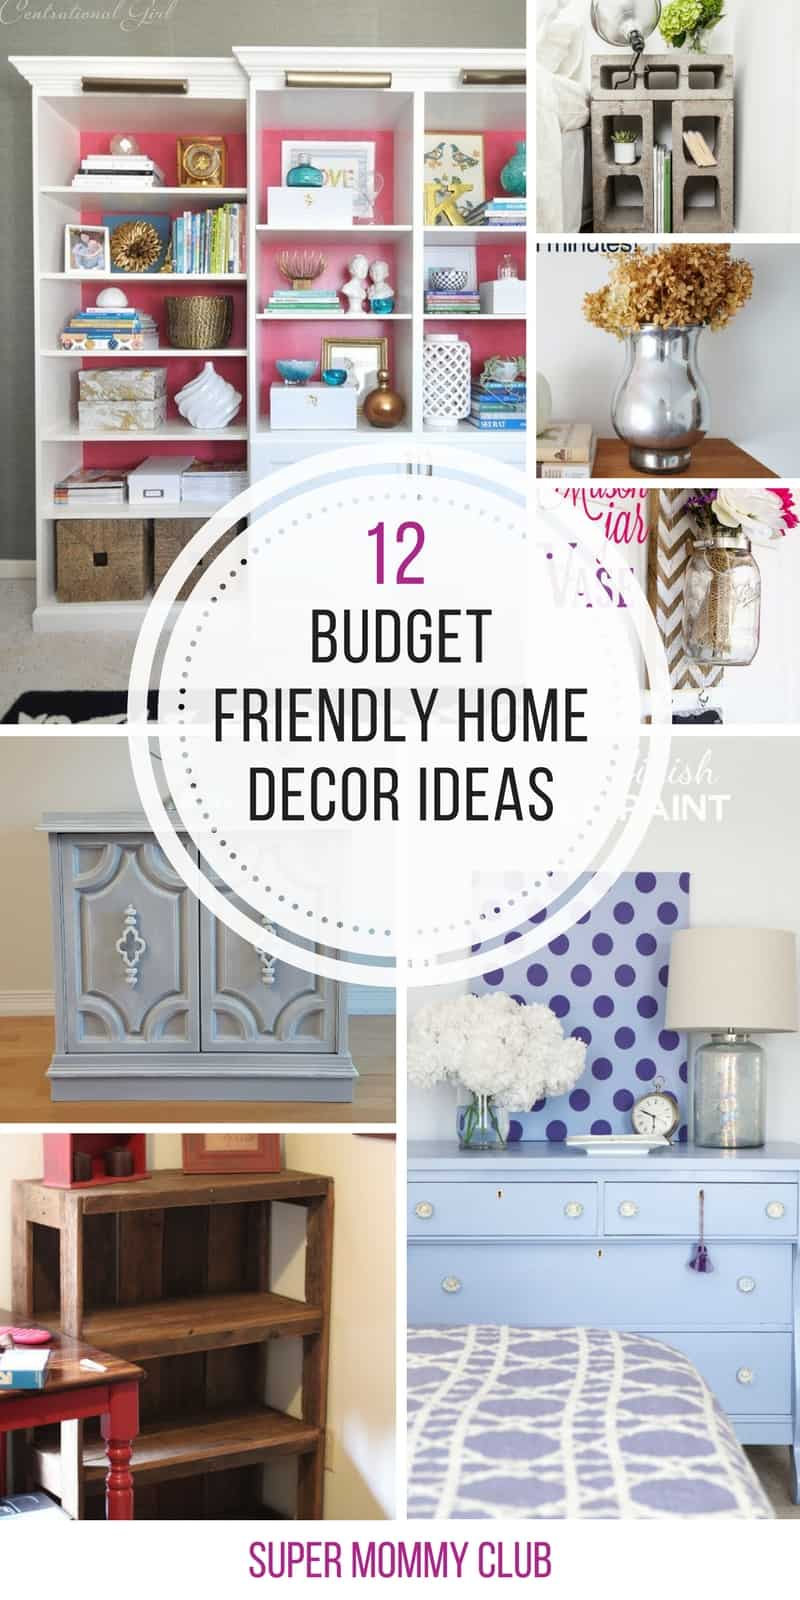 These budget friendly home decor ideas are just what i needed! Thanks for sharing!